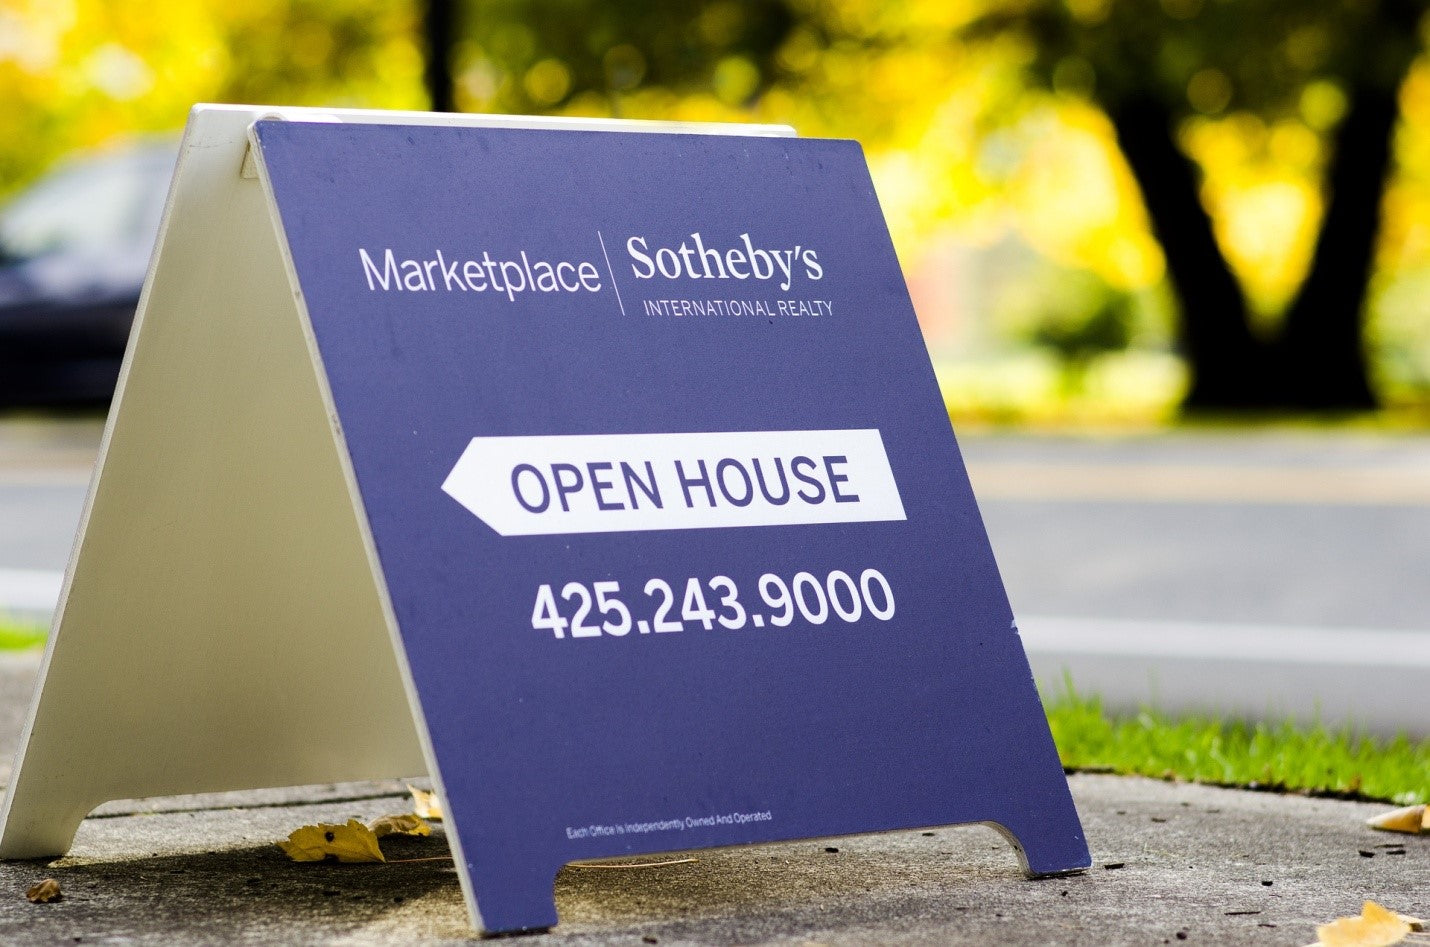 An open house sign on the road